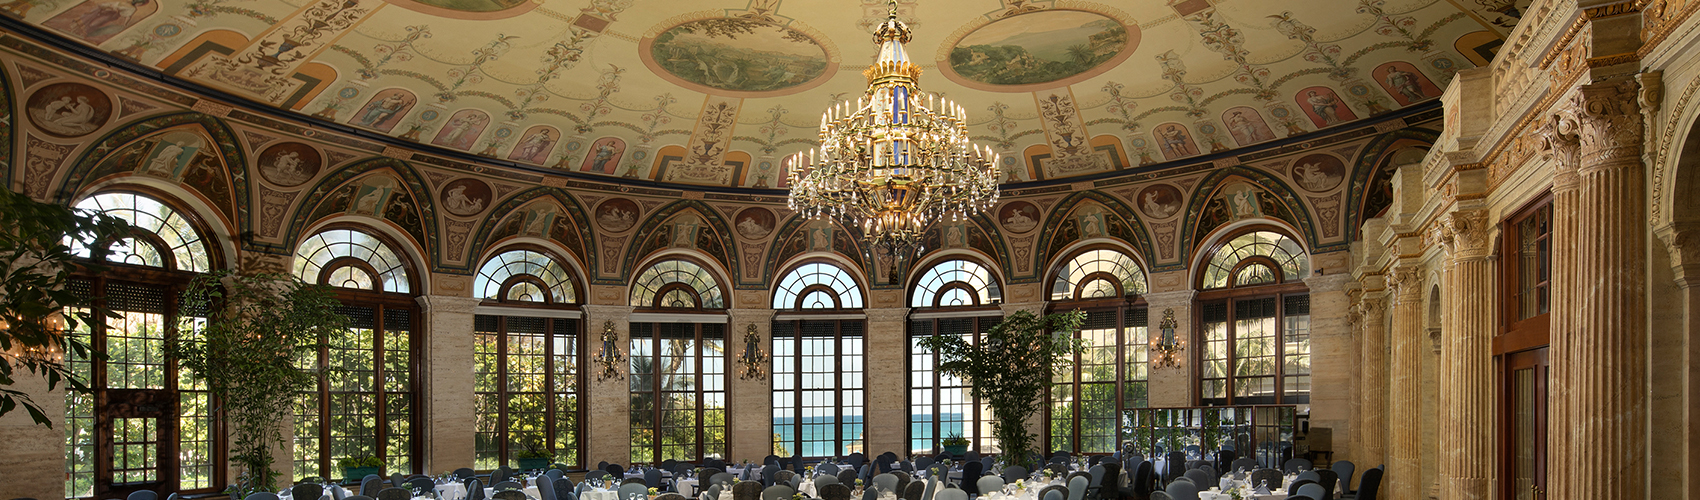 Les Grands Buffets Reservation Sunday Brunch Dining The Breakers